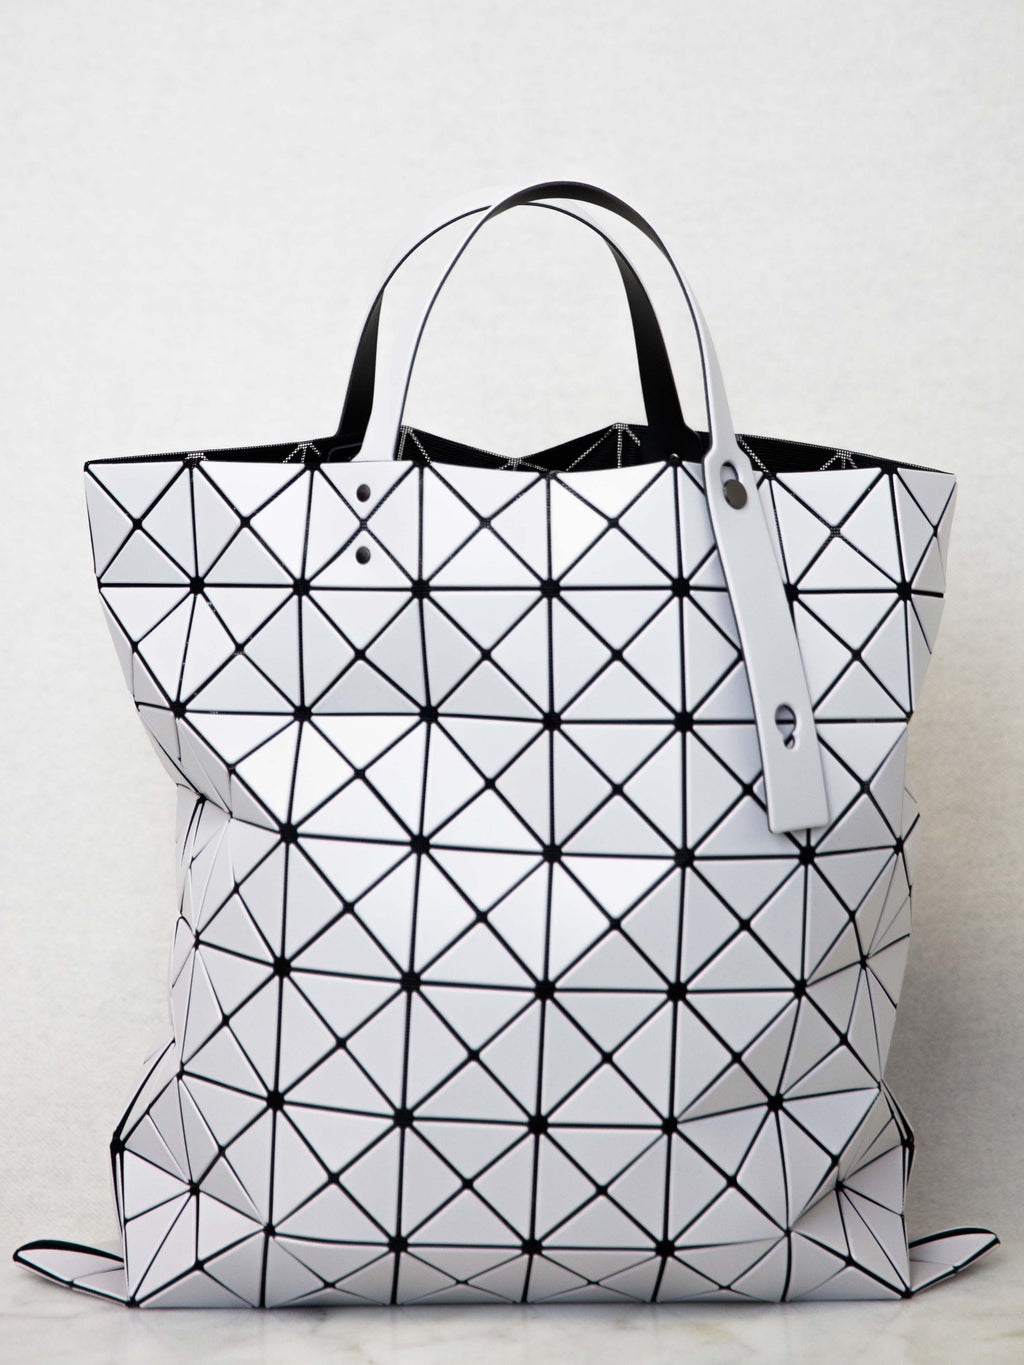 BAO BAO ISSEY MIYAKE Lucent Matte Oversized Tote Bag - Light Grey